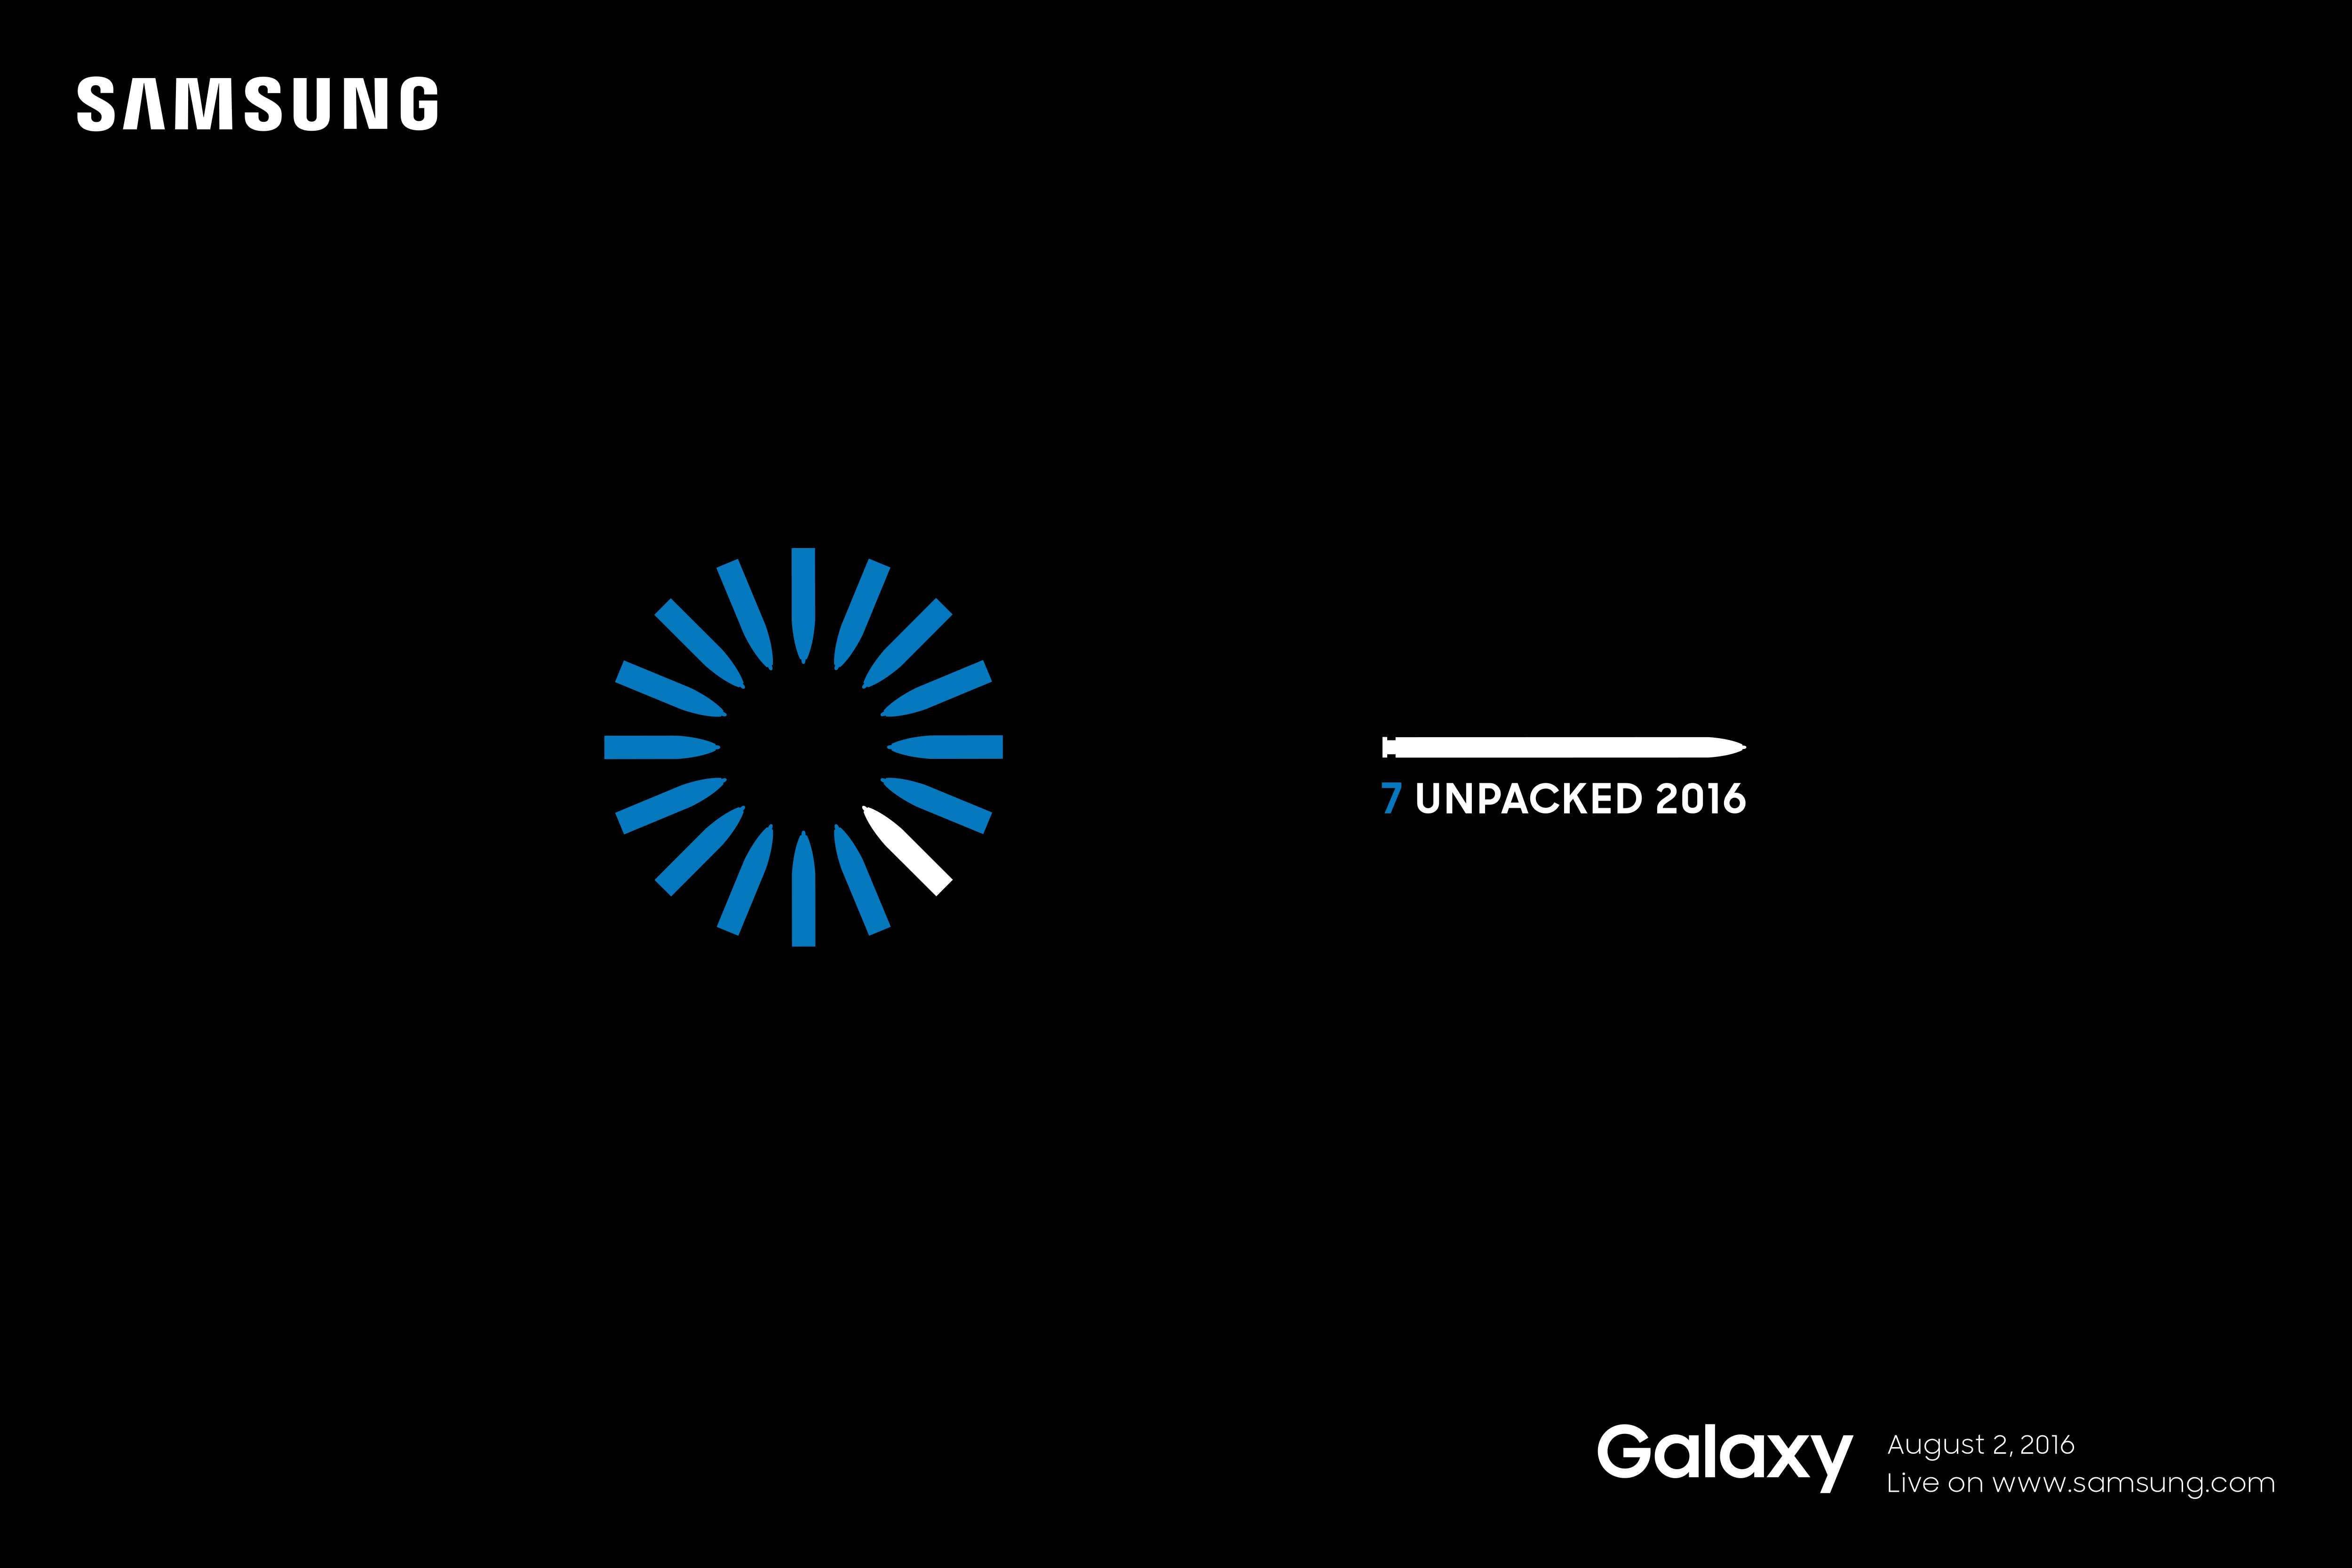 Galaxy Note Unpacked 2016 event for Galaxy Note7